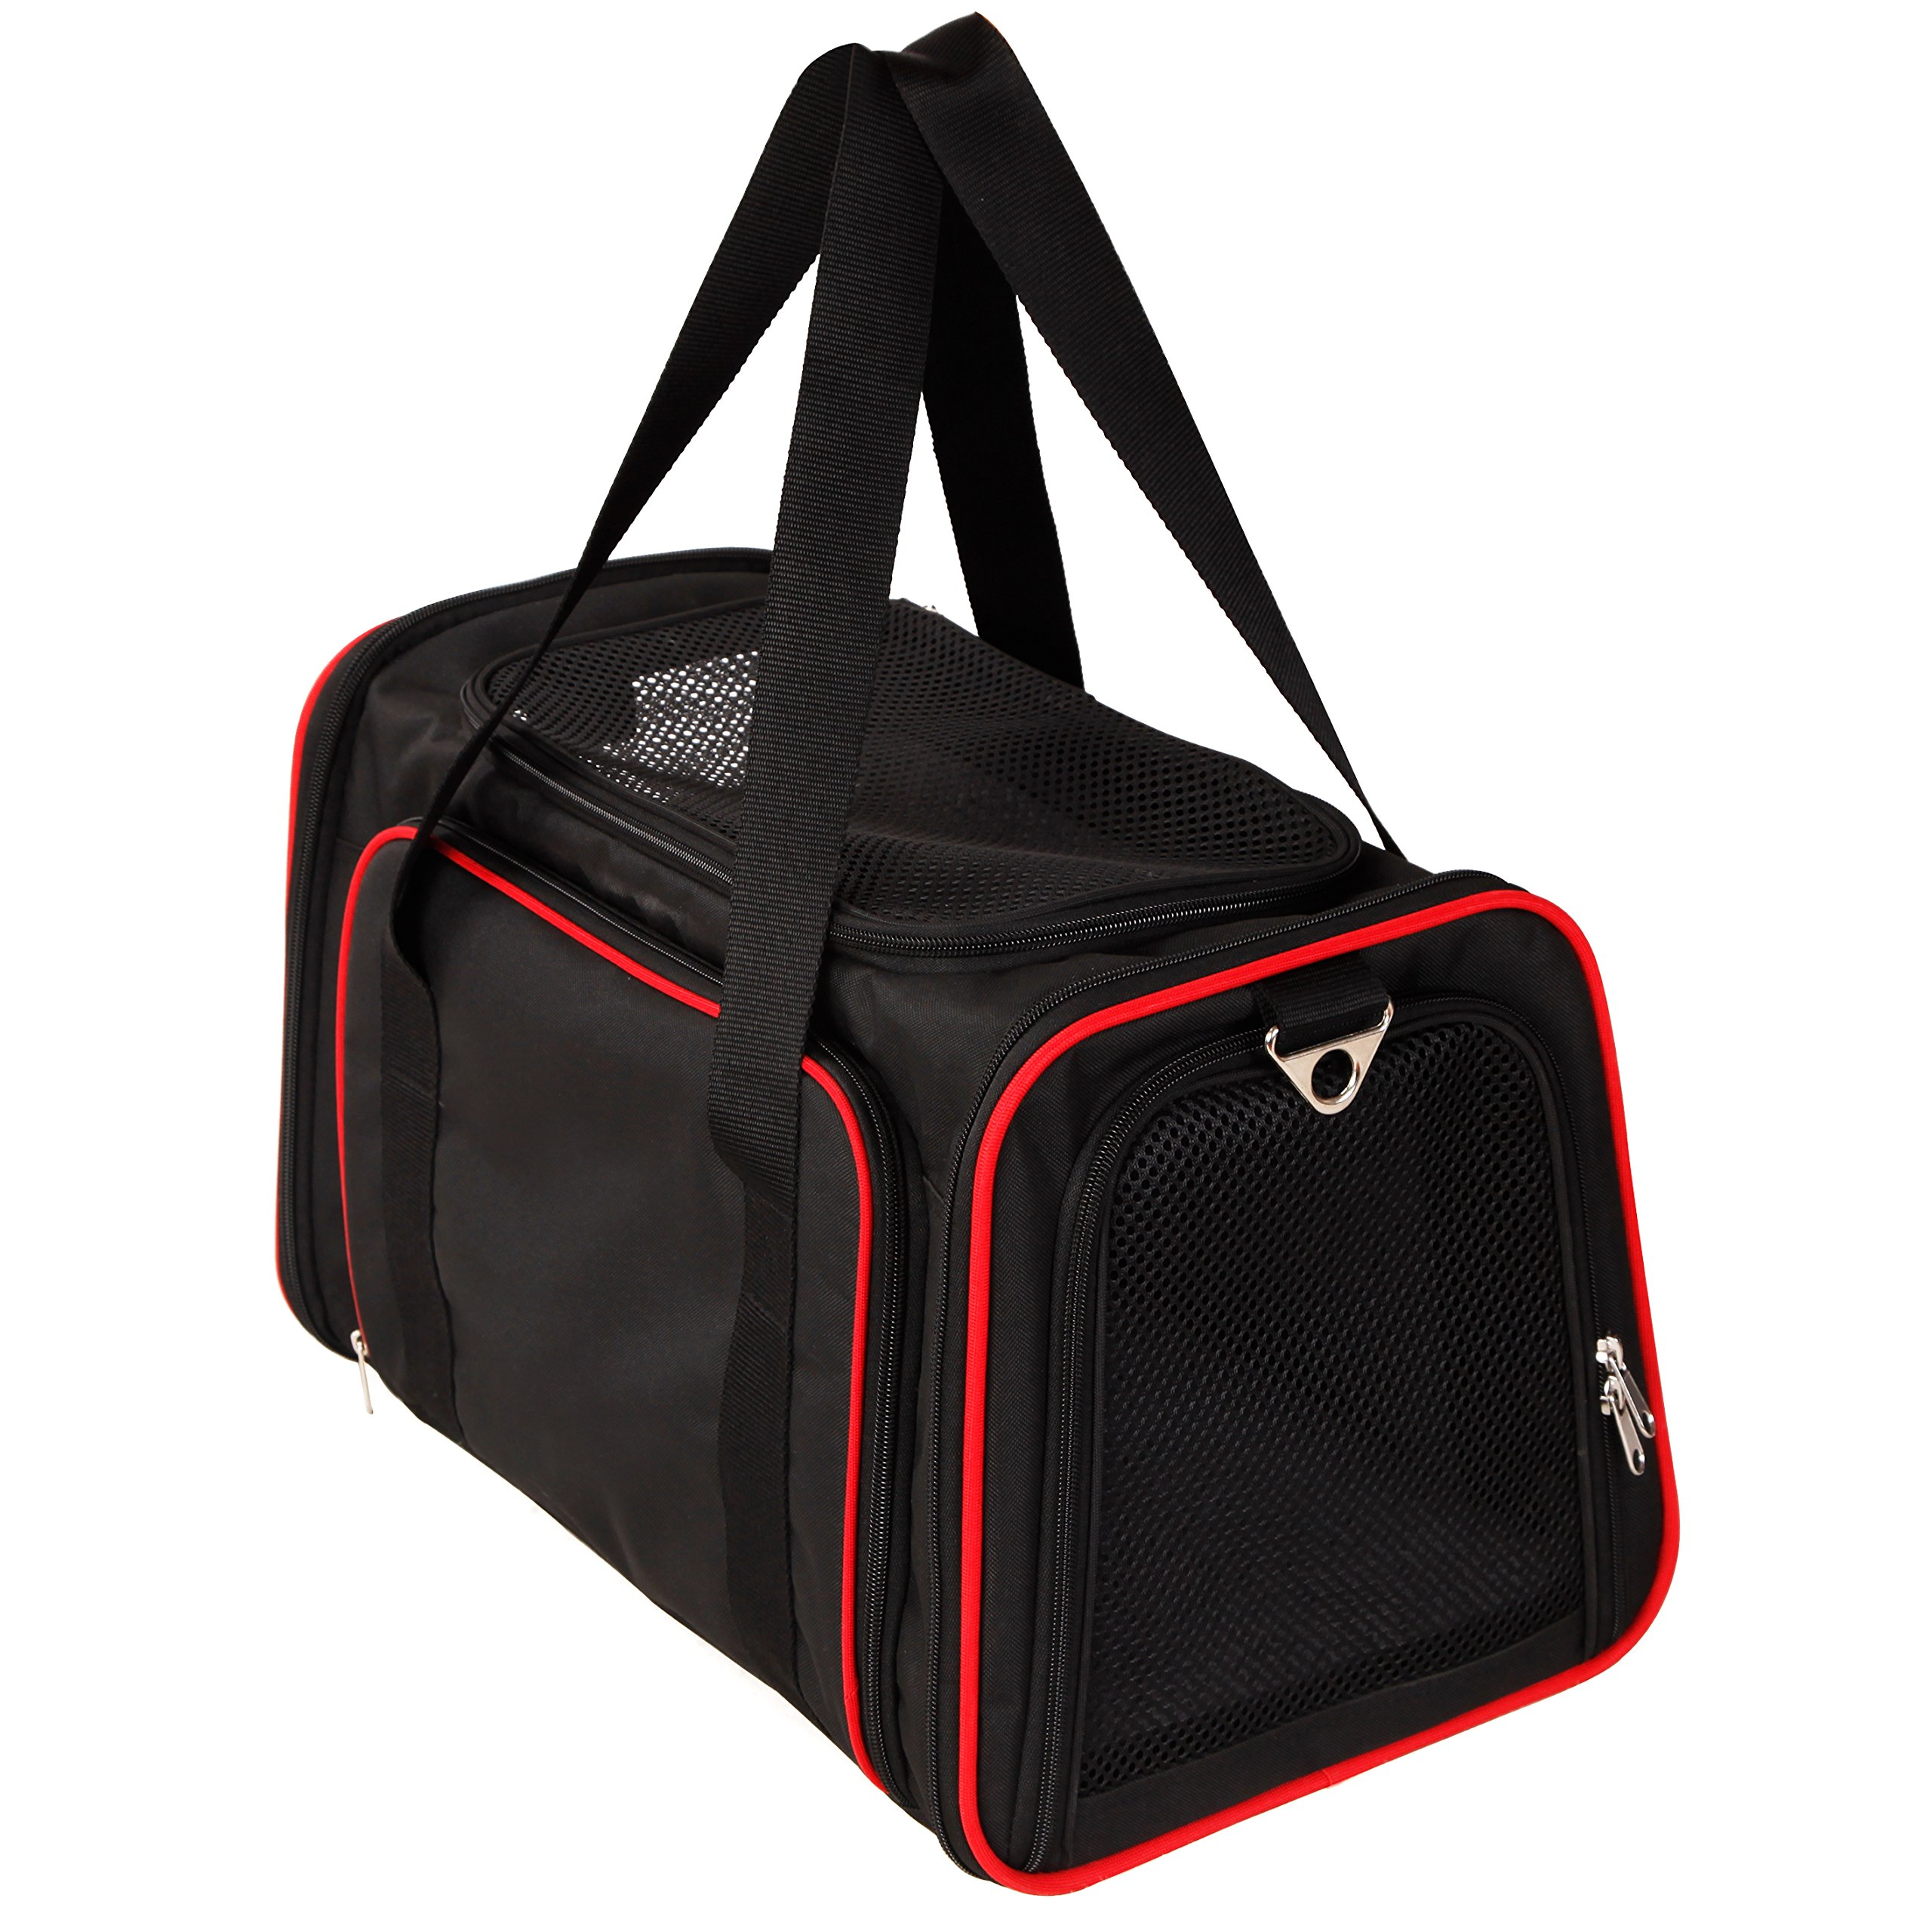 A4Pet Airline Approved Pet Carrier, Both Side Expandable, Top Loading Cats Small Dogs Puppy Small Animals by A4Pet (Image #2)